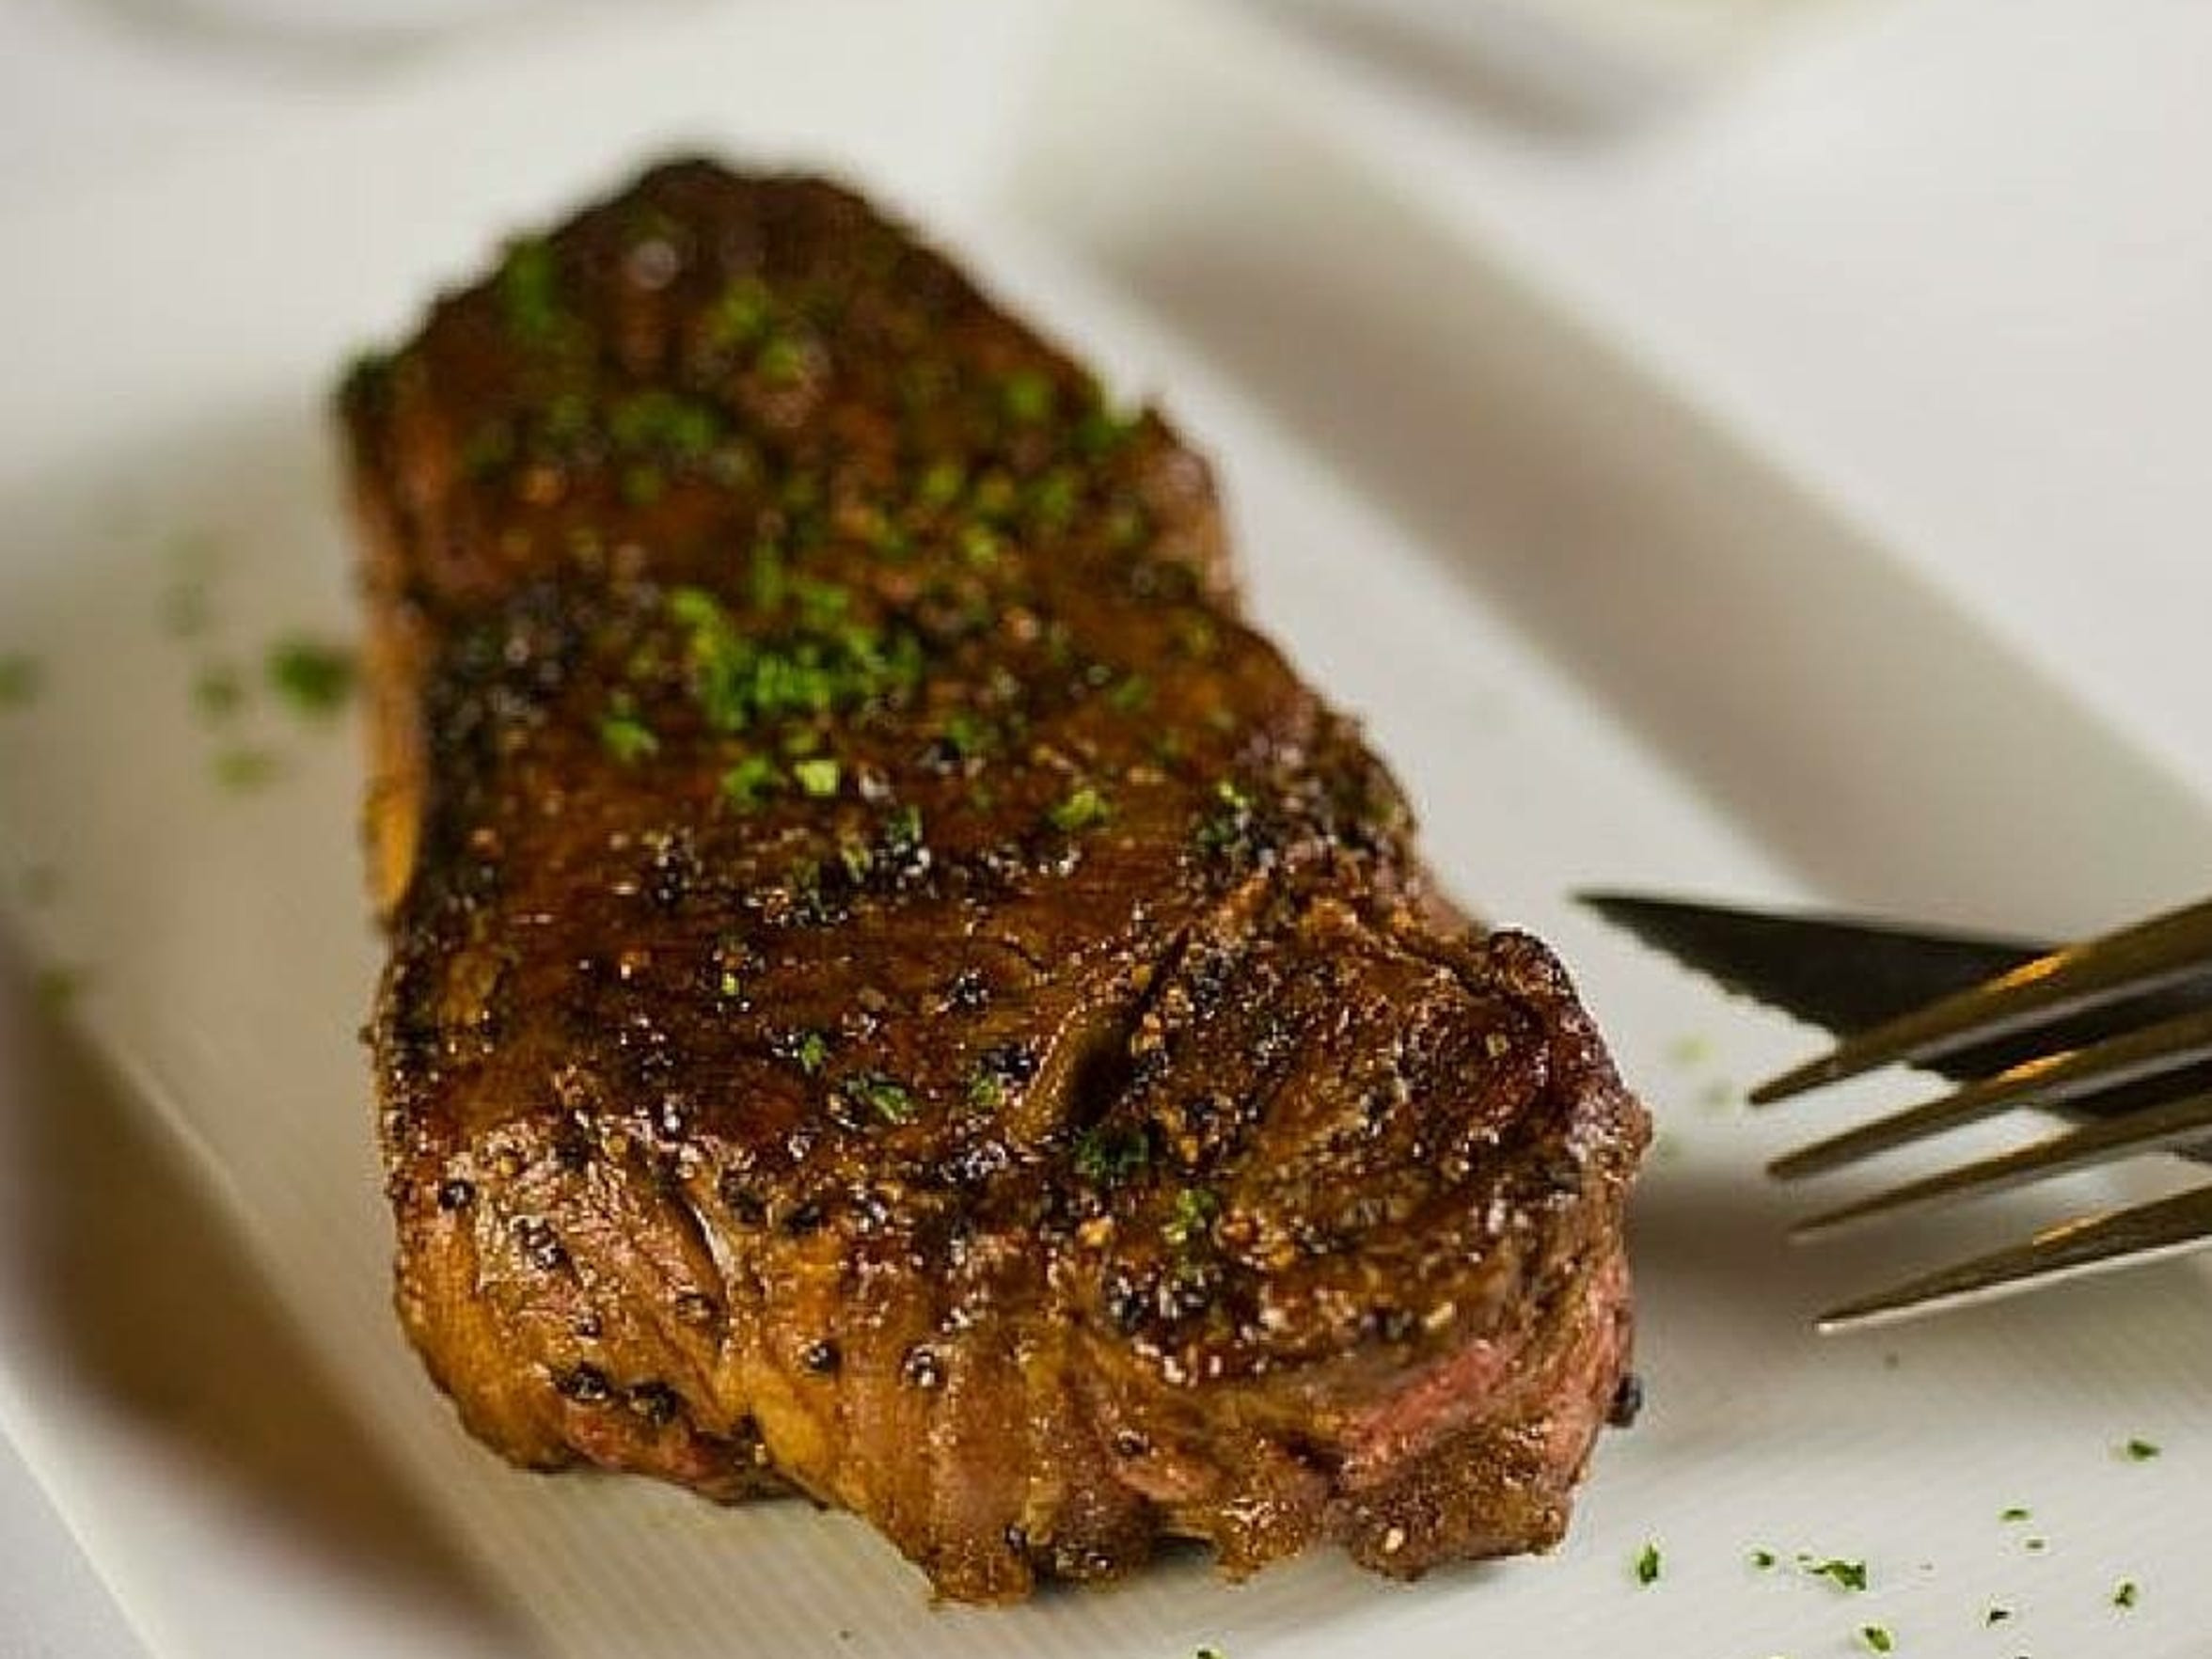 Sullivan's is offering both a hand-cut filet and a 12 oz. New York Strip as part of its Delaware Dines Out menu.